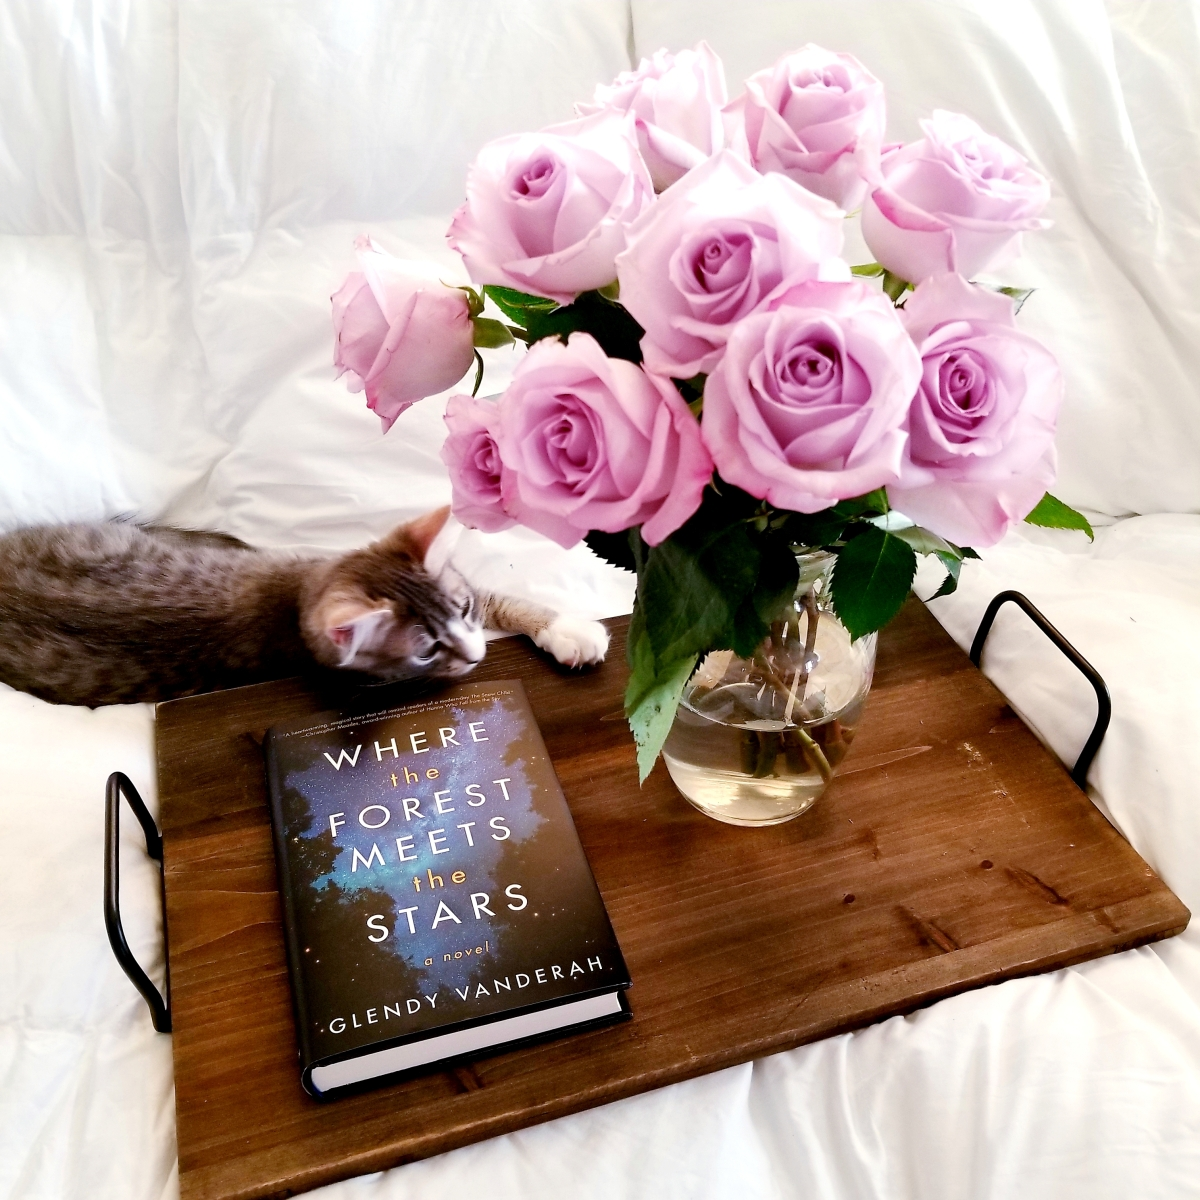 Where the Forest Meets the Stars by Glendy Vanderah #bookreview #tarheelreader #thrforeststars #glendyvanderah @amazonpub @luauthors @tlcbooktours #wheretheforestmeetsthestars #blogtour #bookgiveaway